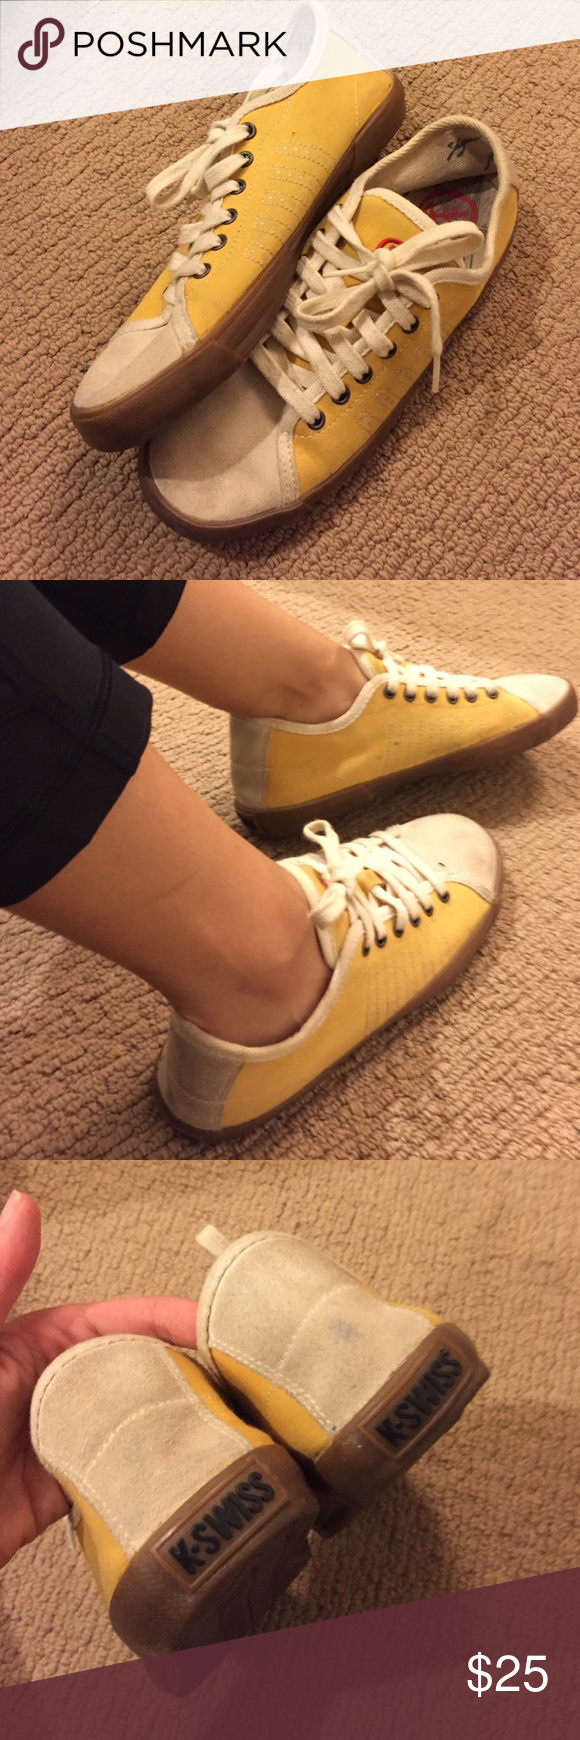 Yigel Azrouel for K-Swiss sneakers. These are super cute! I wore them a handful of times, there is a bit of dirt on the leather... but they're like new aside from that (the soles aren't worn at all). Make an offer! Size 7 K-Swiss Shoes Sneakers